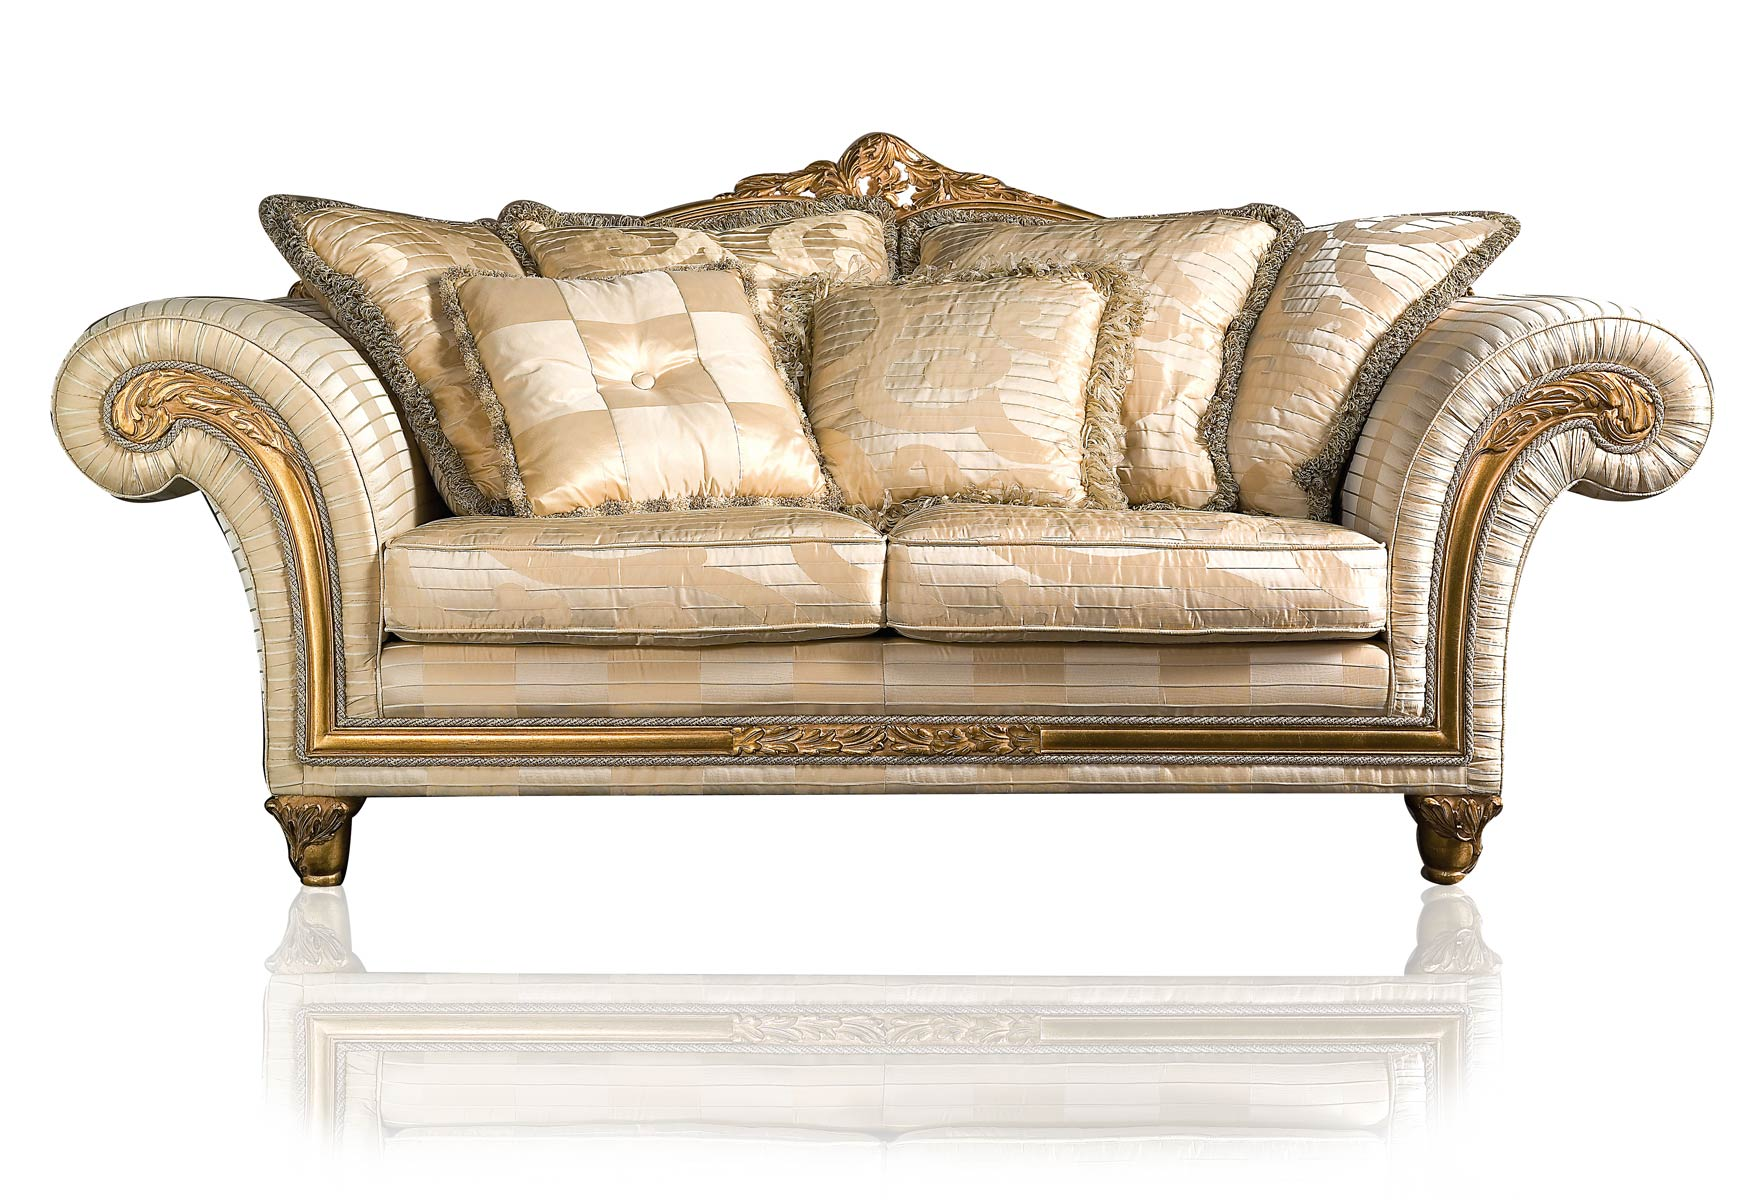 Luxury classic sofa and armchairs imperial by vimercati for Modern luxury furniture